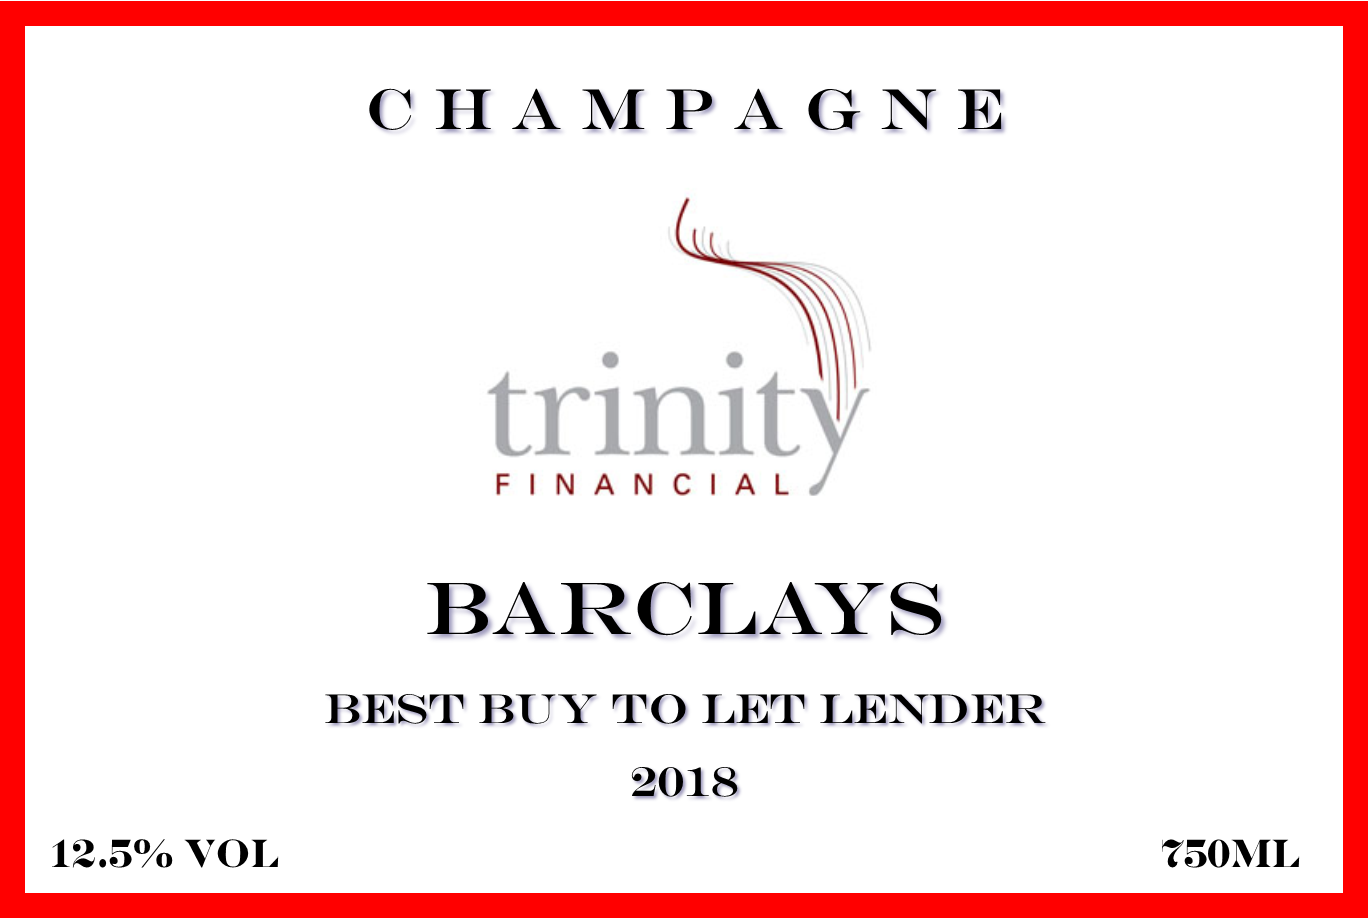 Trinity Financial 20181011 Barclays